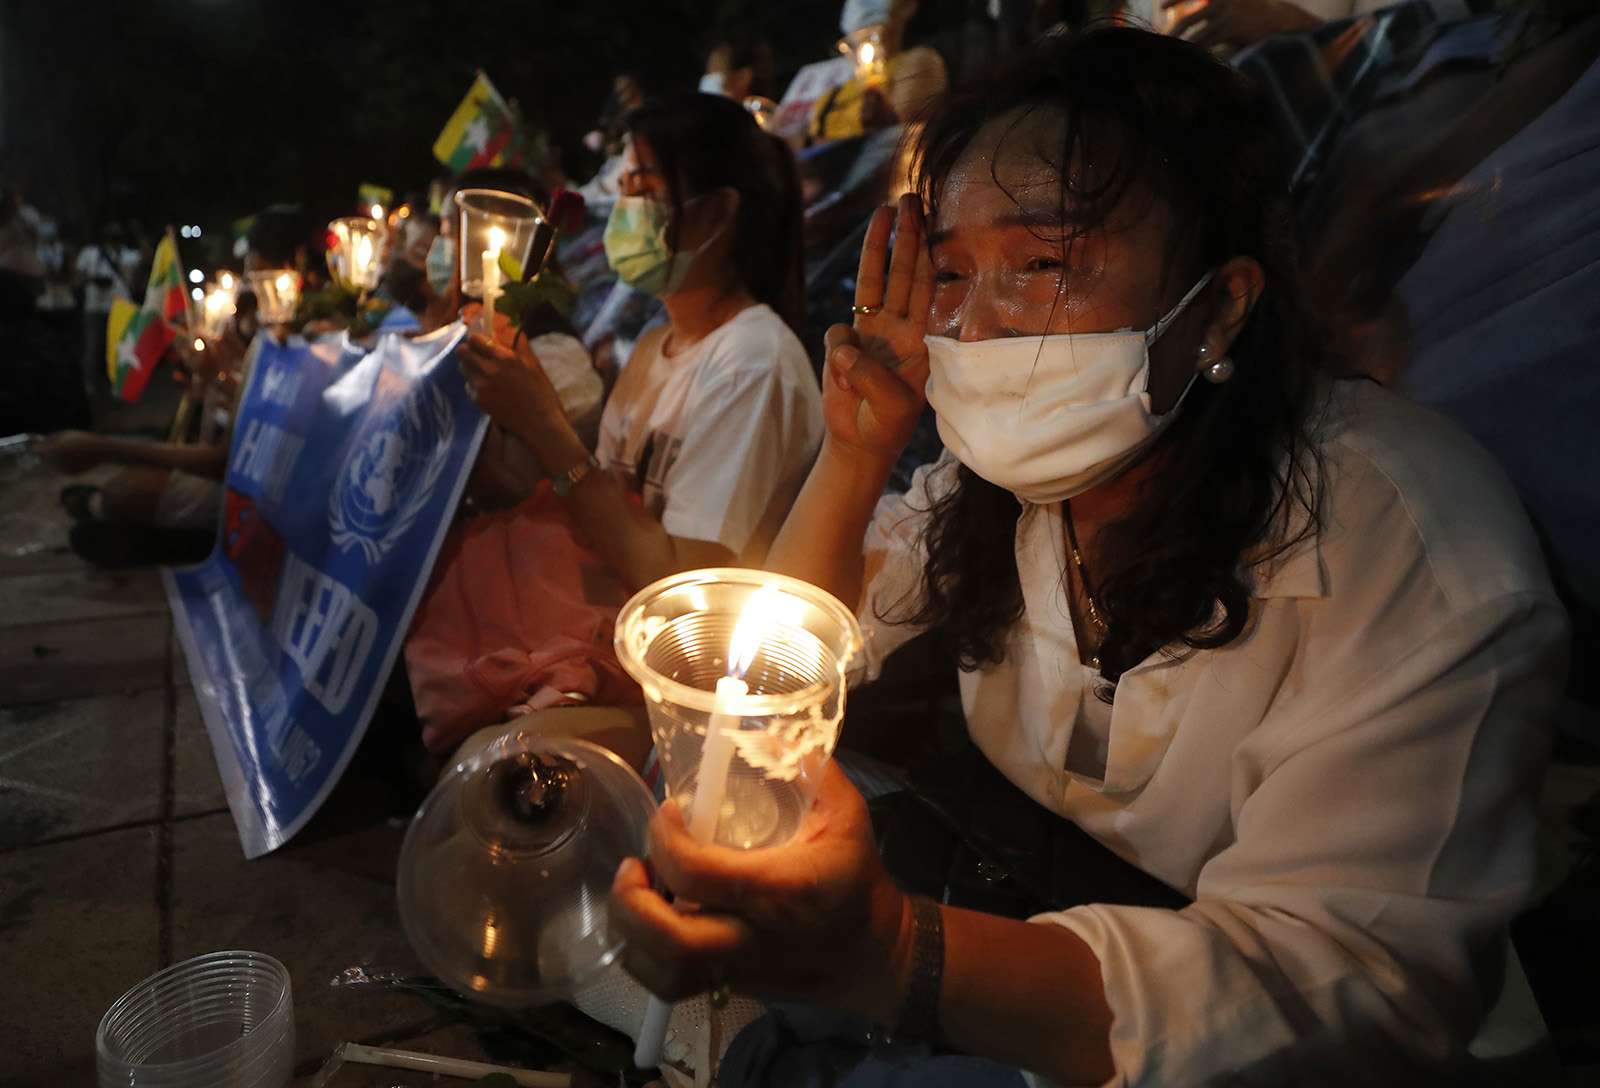 Myanmar nationals living in Thailand gesture with a three-finger sign of resistance during a candlelight vigil against the Myanmar military coup in front of the United Nations building in Bangkok, Thailand, Thursday, March 4, 2021. (AP Photo/Sakchai Lalit)